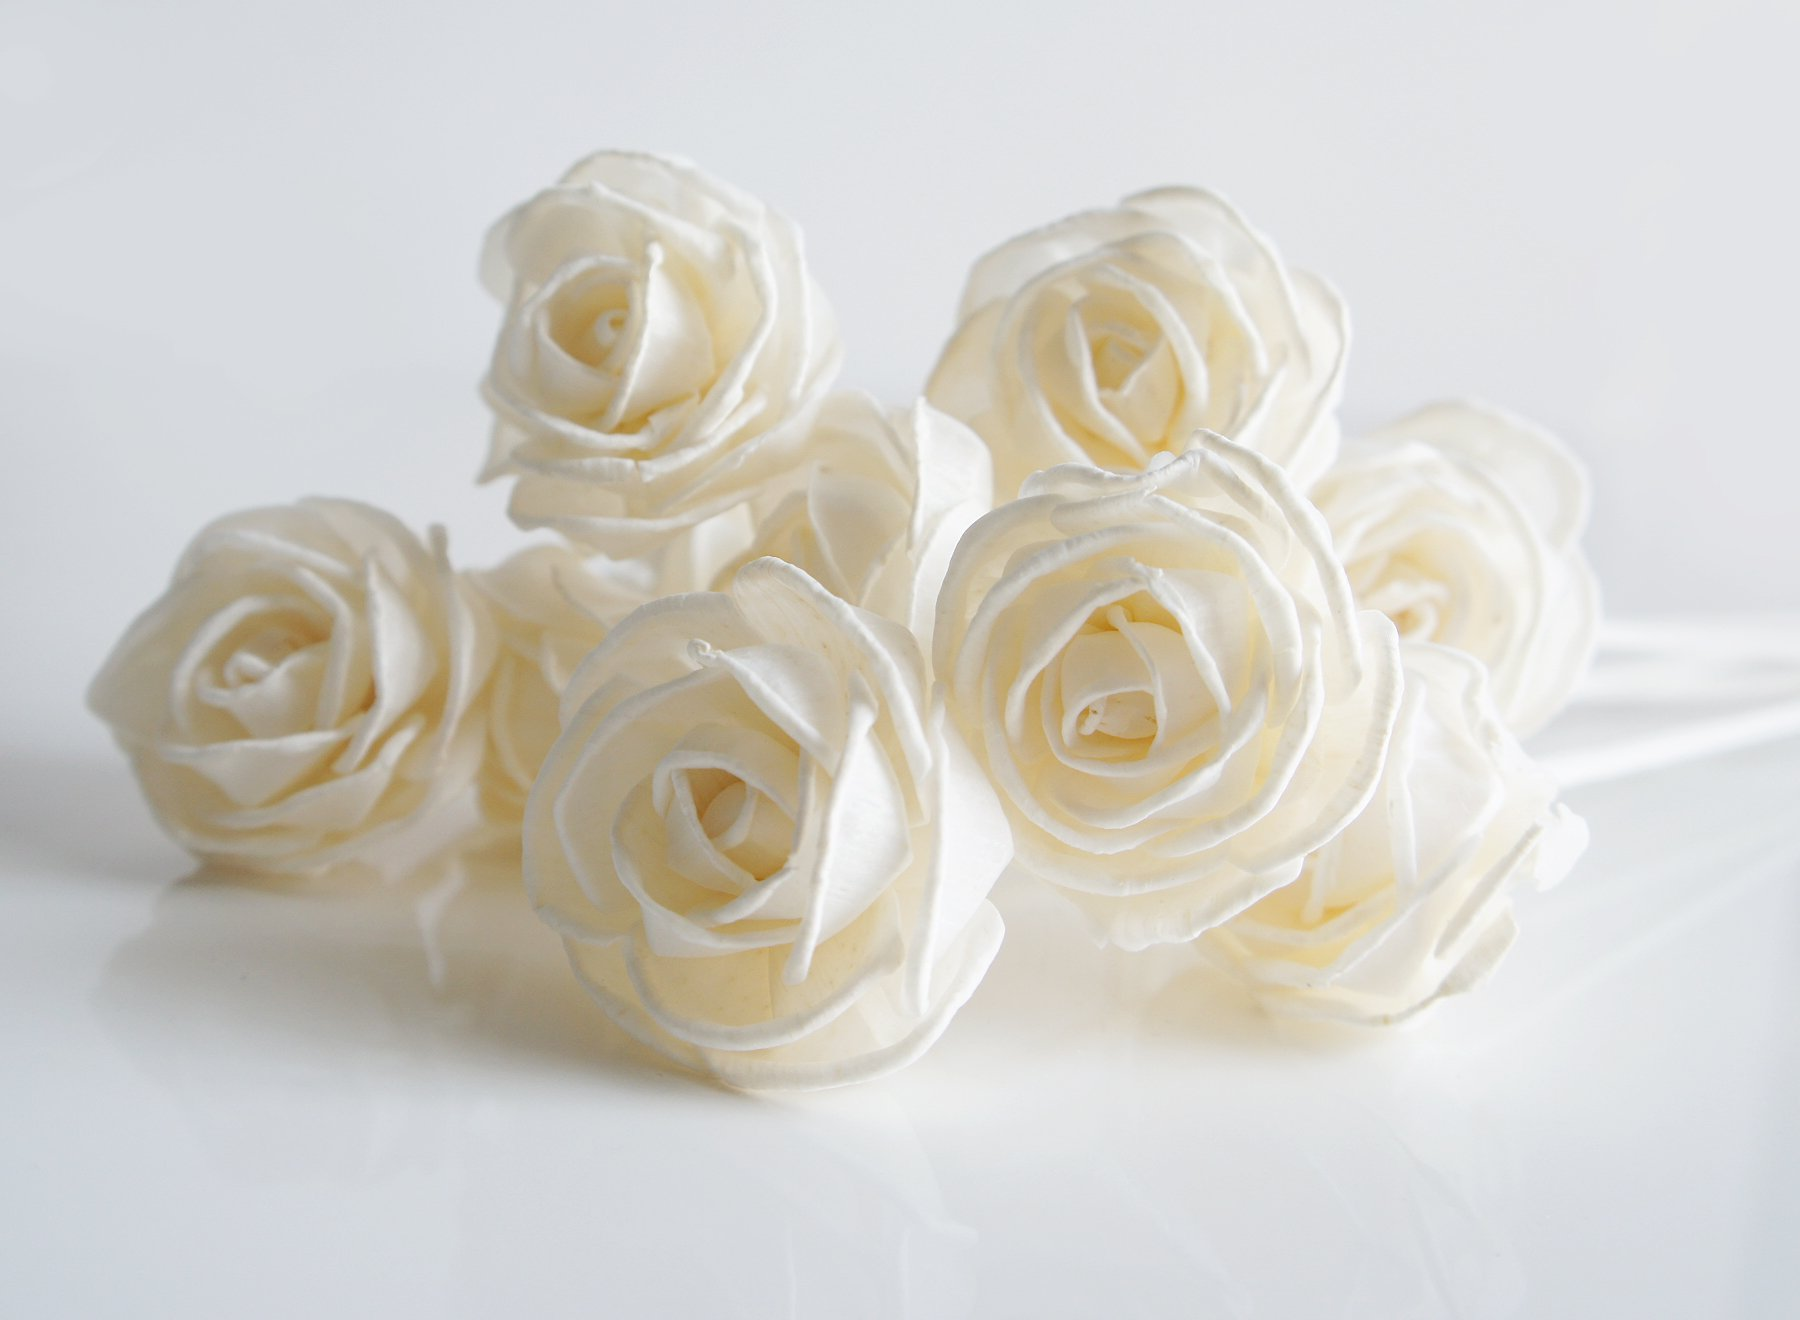 Exotic Plawanature Set of 10 Rose Curl Design 1.5 Inch Sola Wood Flower with Reed Diffuser for Home Fragrance Aroma Oil.